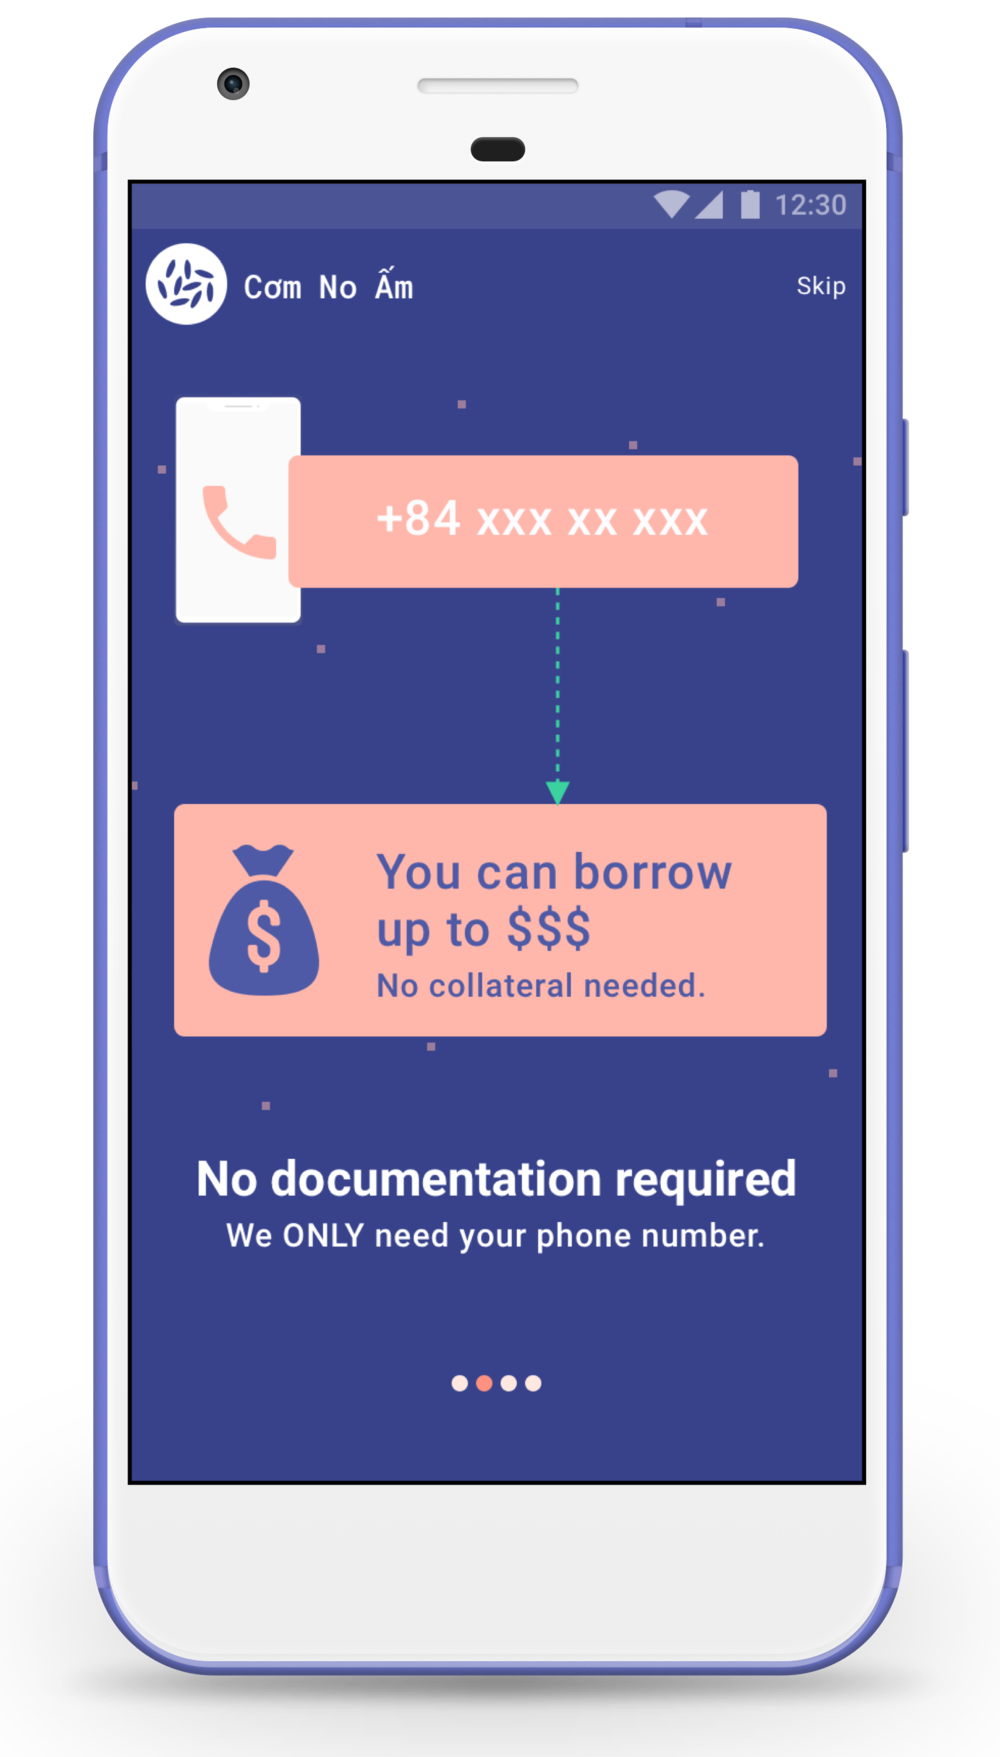 Once the user has installed the app, the new credit scoring technology allows her to find out how much unsecured loan she can borrow up to. All she needs to do is to provide her phone number.